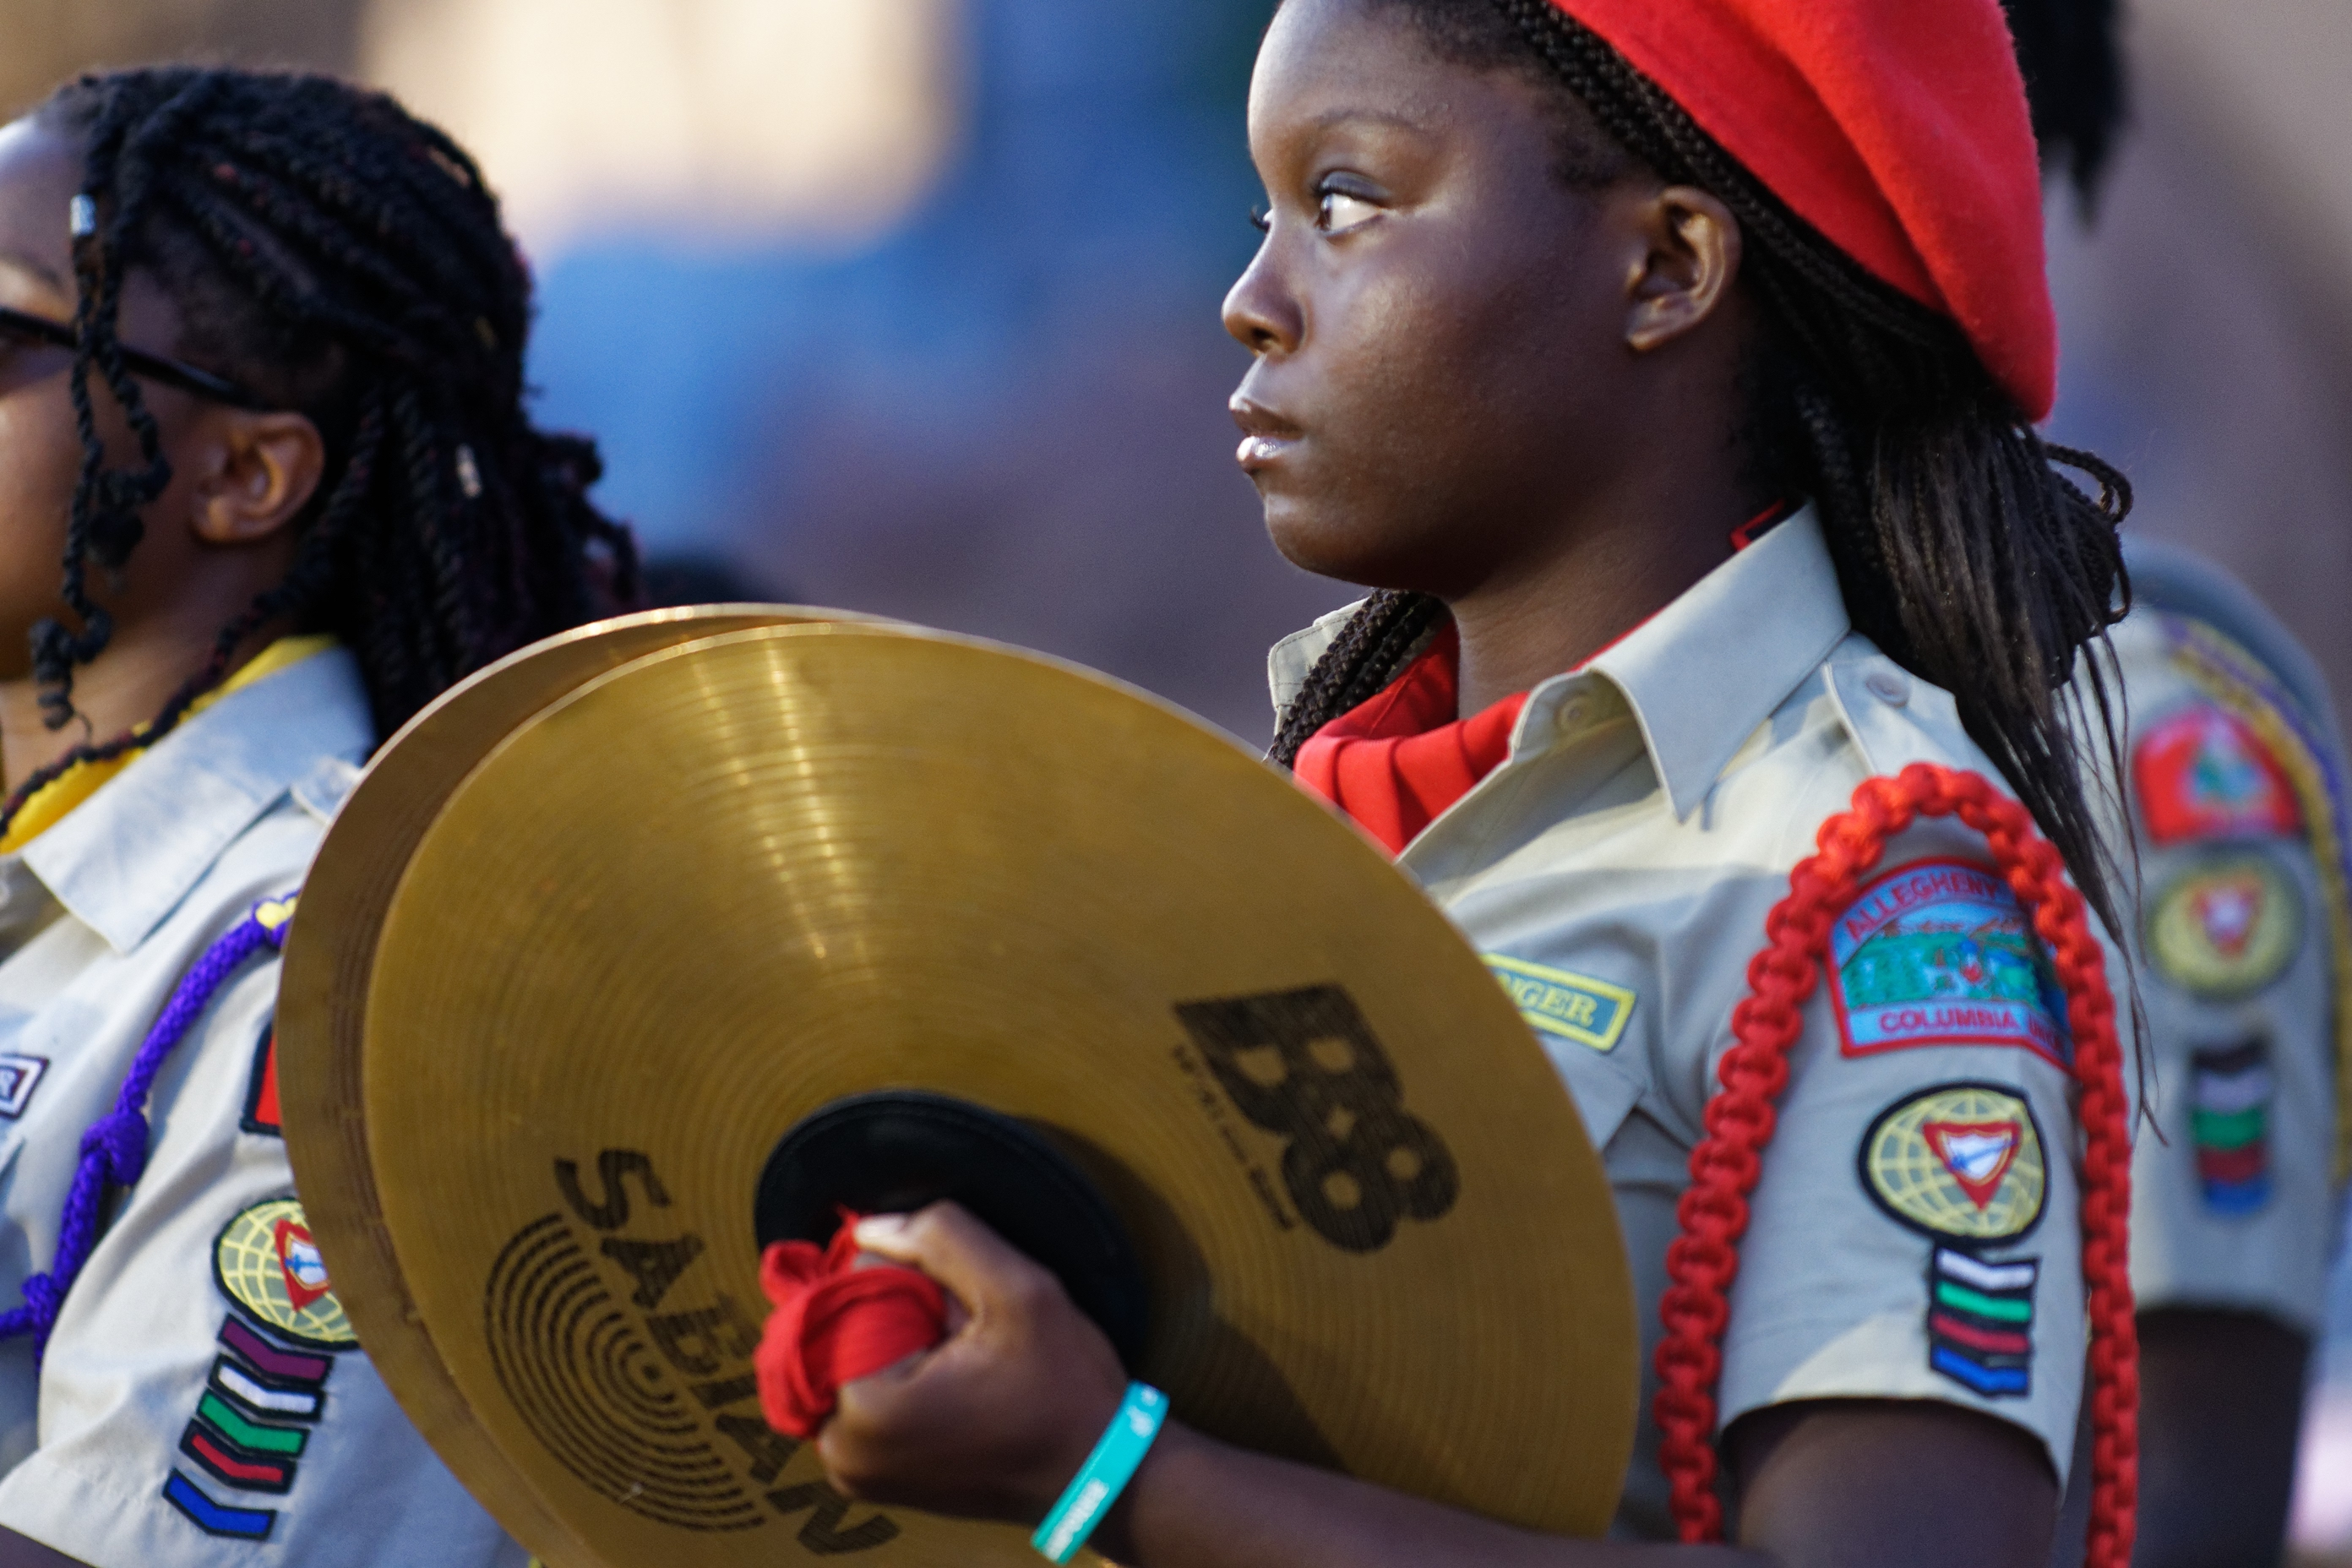 Allegheny East Pathfinders participate in the drum crops drill competition at the 2019 Chosen International Camporee. Photo by Stephen Baker